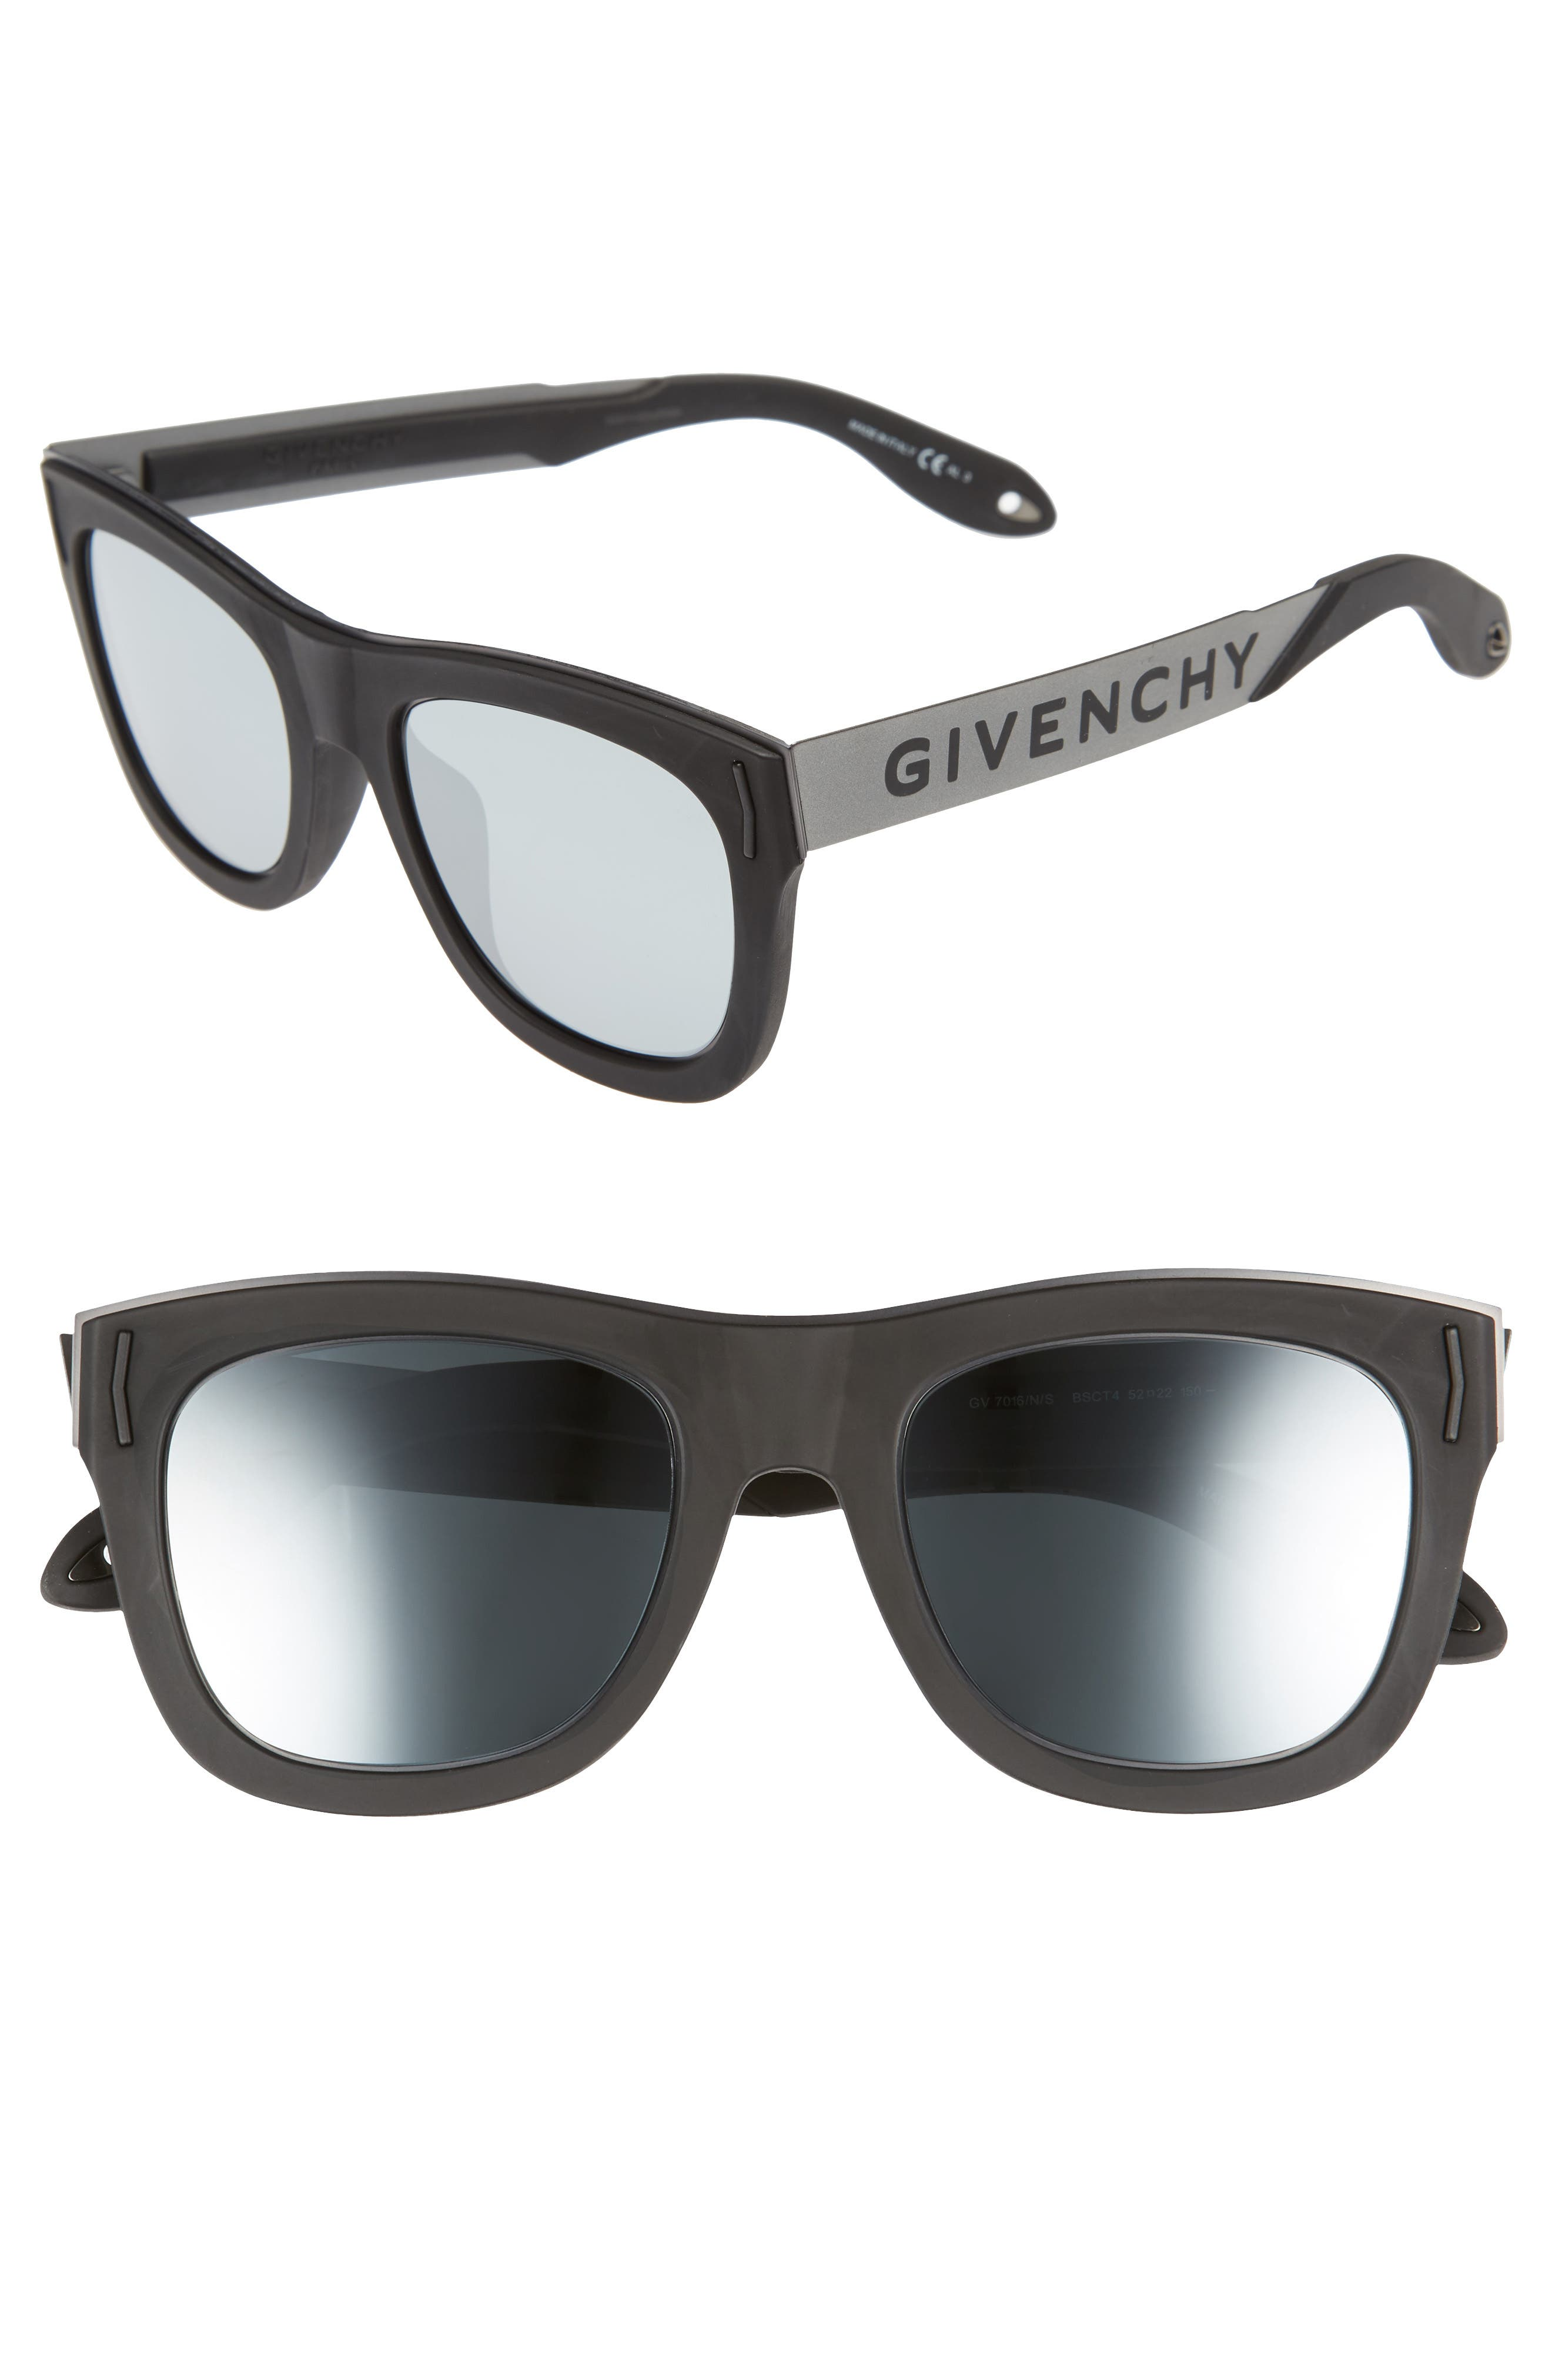 Main Image - Givenchy 52mm Mirrored Rectangular Sunglasses